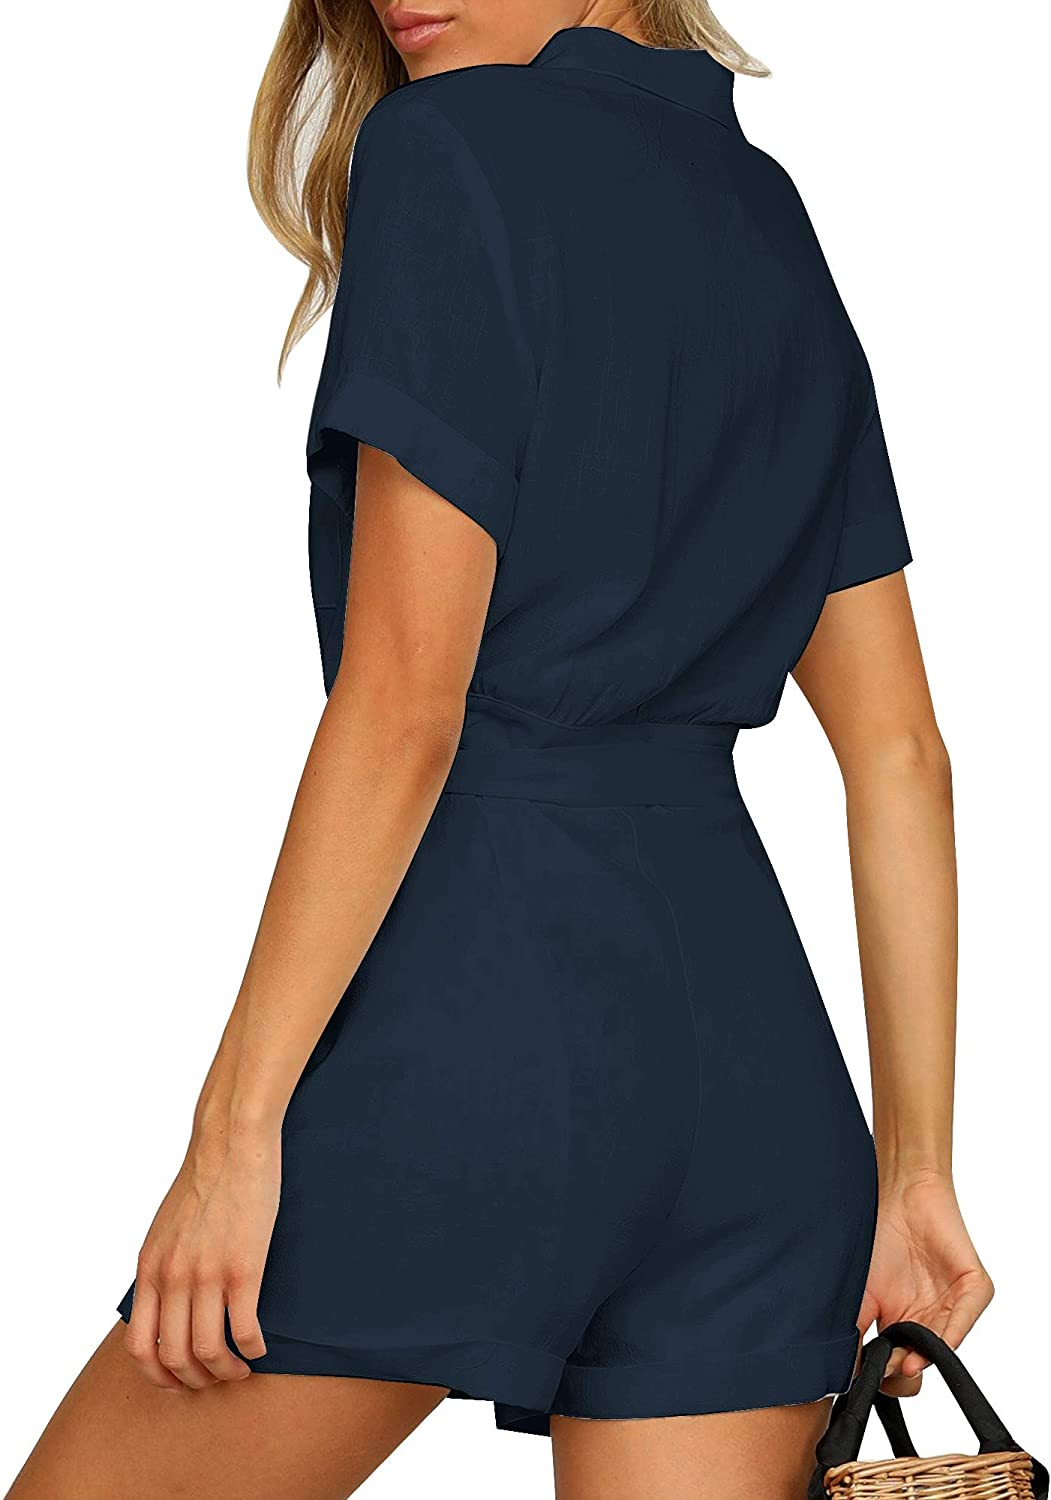 Vetinee Womens Summer Pocket Belted Romper Button Short Sleeve Jumpsuit Playsuit